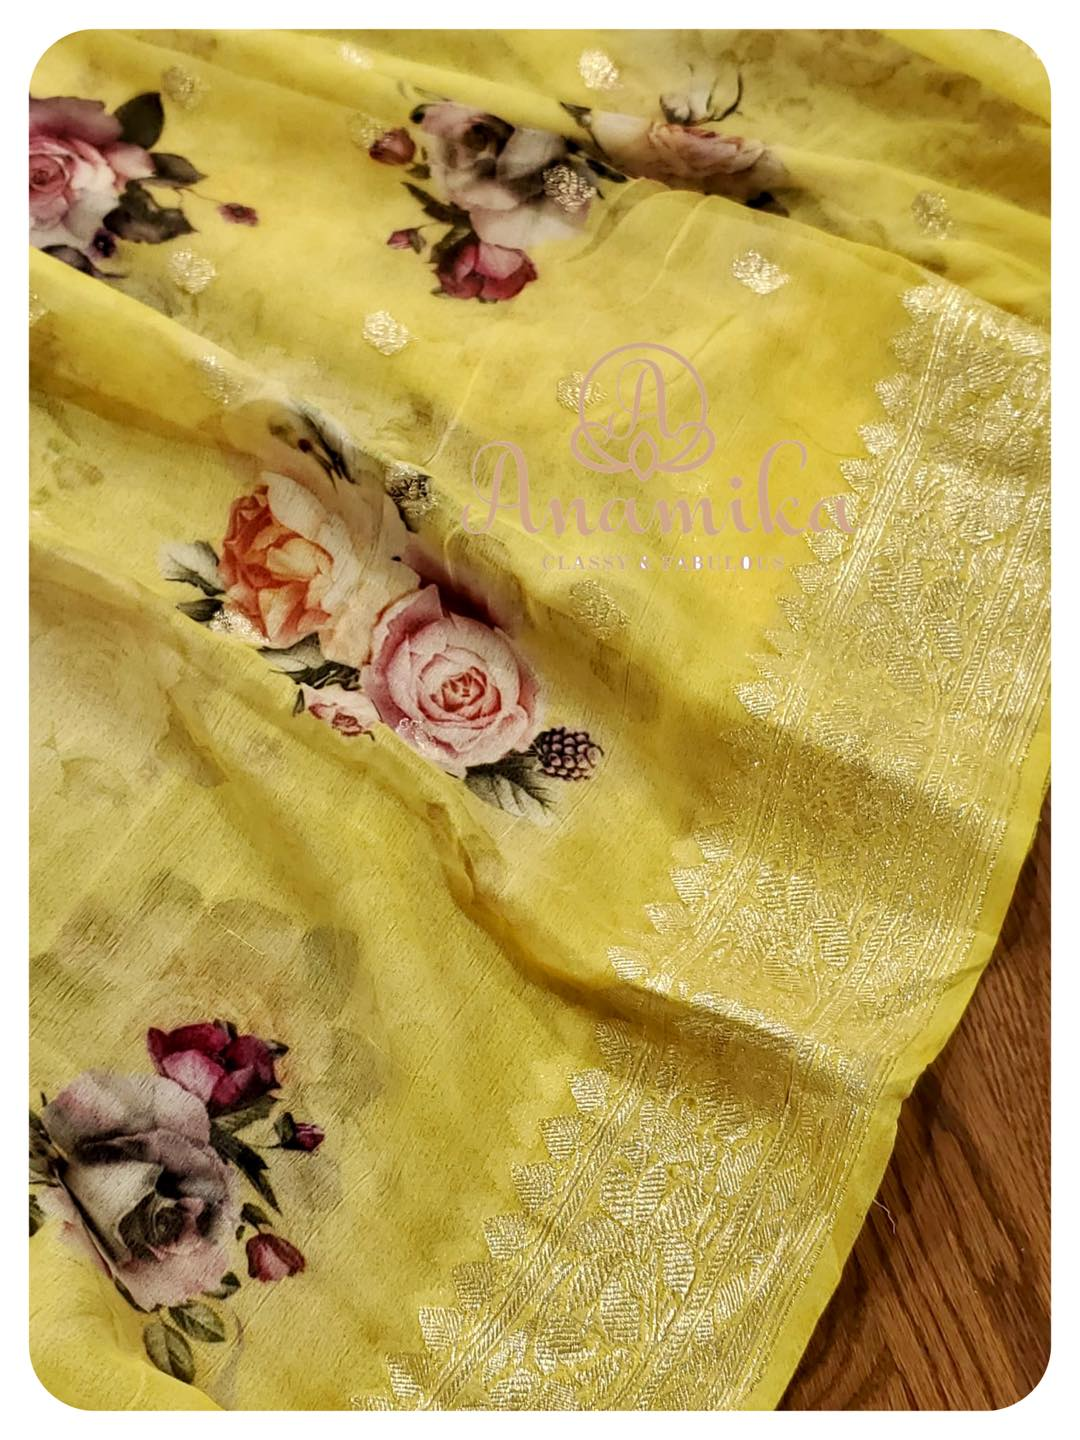 Favorite Banarasi Chiffon sarees now enhanced with Digital Floral Prints. Grab yours now - and be the trend setter.  So light so soft and so easy to drape - yet so Stylish and Unique !  DM 360-545-3636 for inquiries 2021-05-26